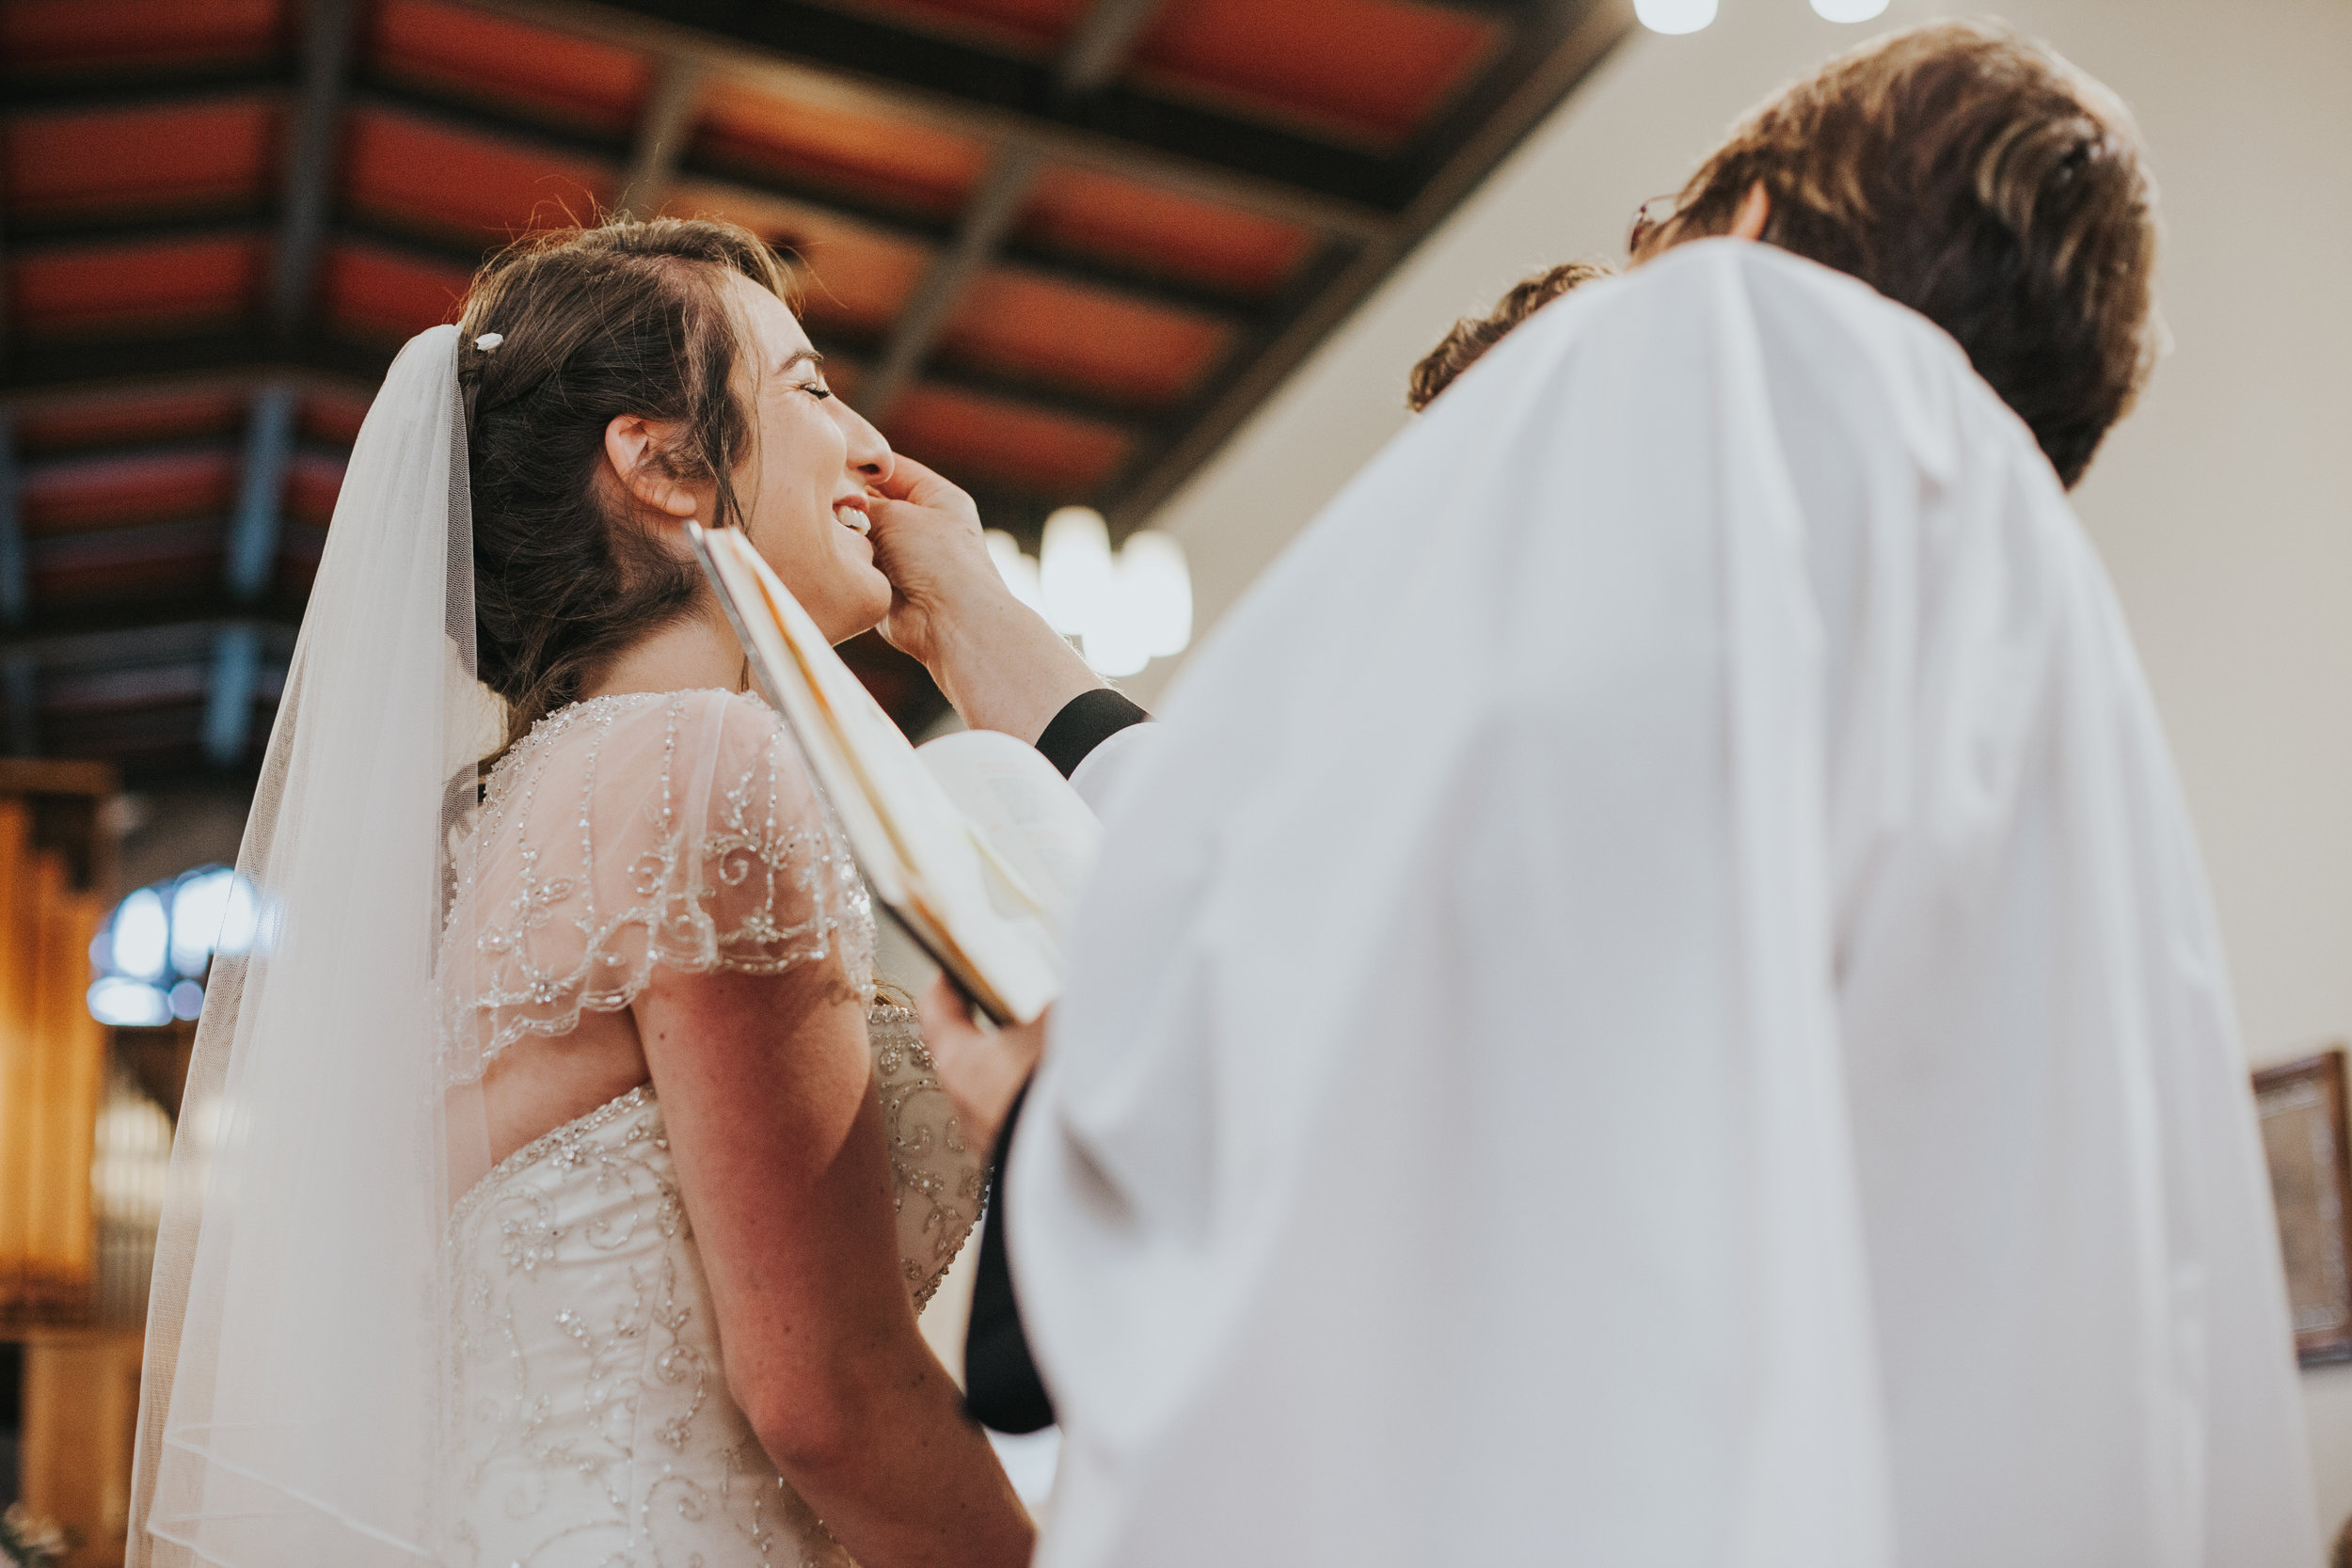 Female vicar wipes tears from brides face, while bride laughs.